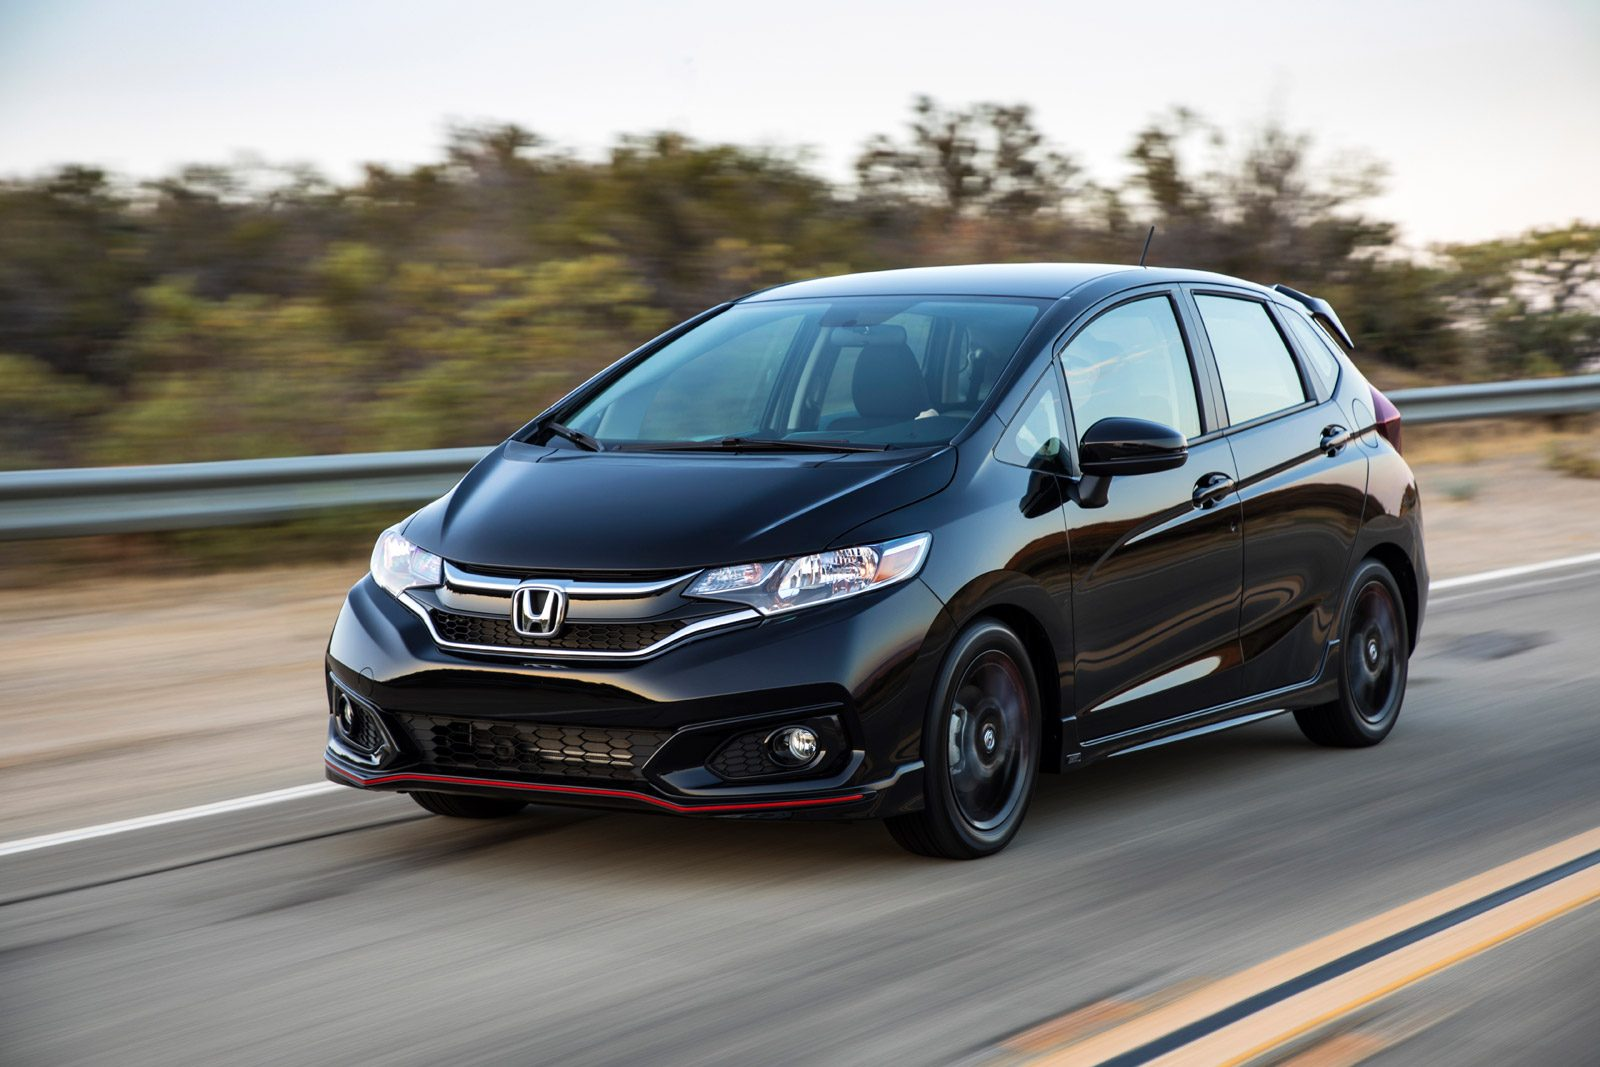 Top 10 Best New Cars for Teens Under $20K: 2017 Consumer ...